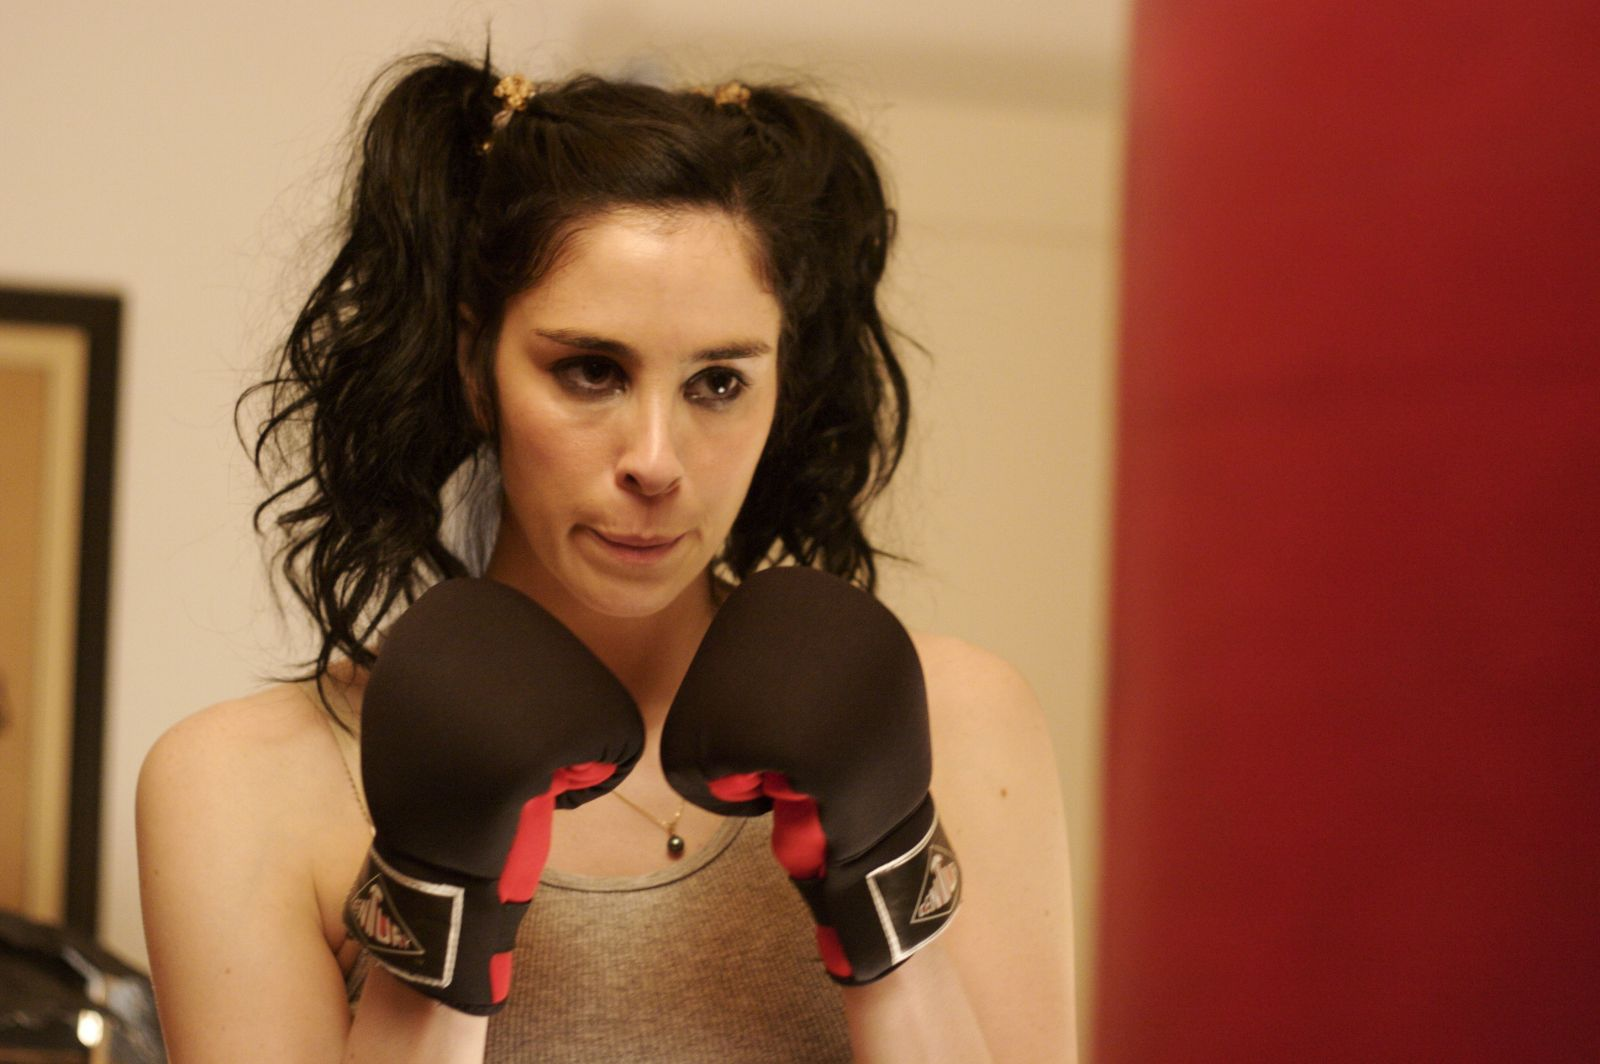 NBC commits to put Sarah Silverman pilot on the air